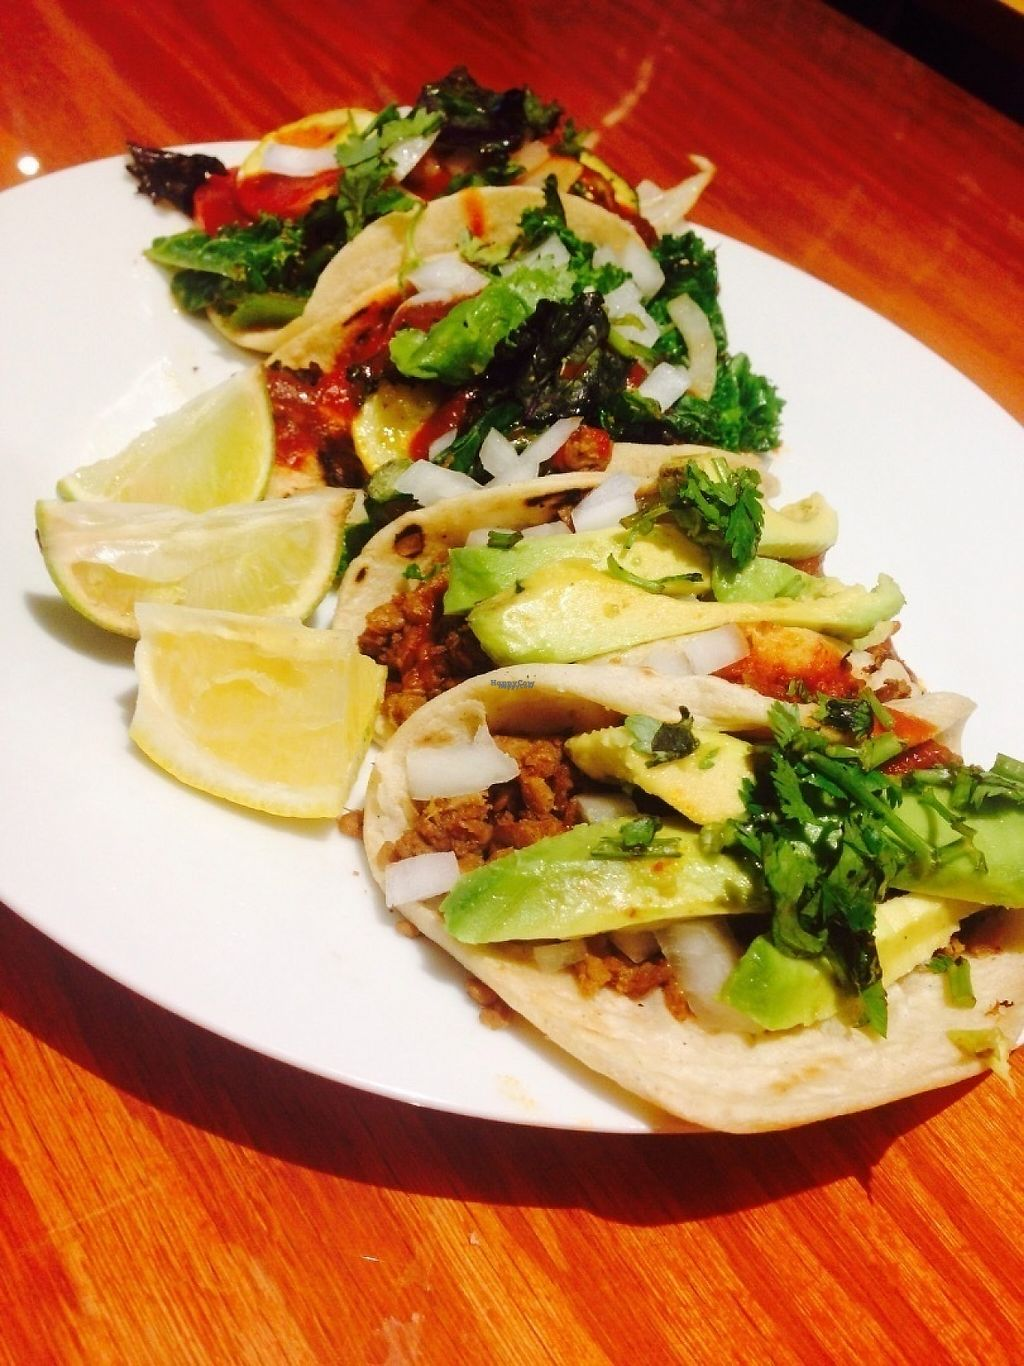 """Photo of Peace Nation   by <a href=""""/members/profile/EwelinaGasior"""">EwelinaGasior</a> <br/>Faux beefless crumbles tacos topped with house sauce, onions, cilantro & avocado in hand made gluten free Guatemalan tortillas :)  <br/> January 18, 2017  - <a href='/contact/abuse/image/85233/212935'>Report</a>"""